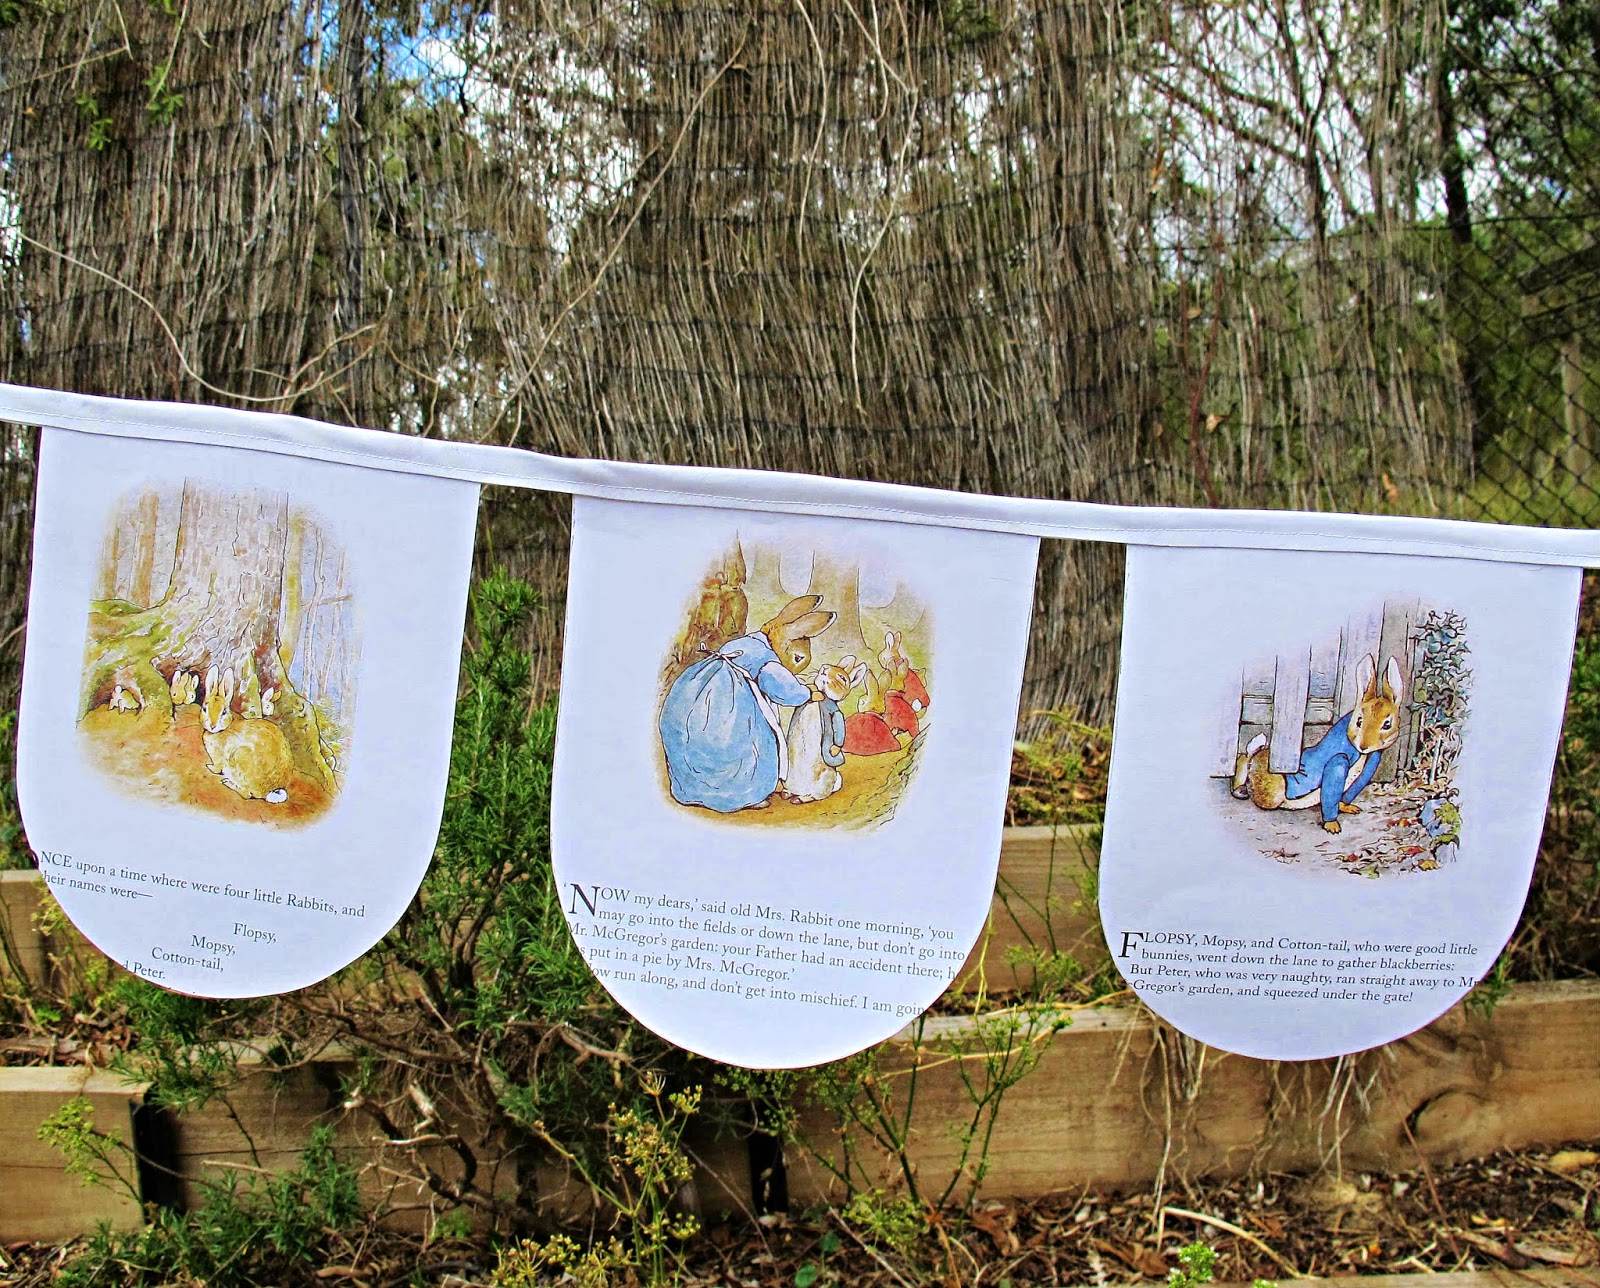 image peter rabbit bunting beatrix potter the tale of peter rabbit domum vindemia